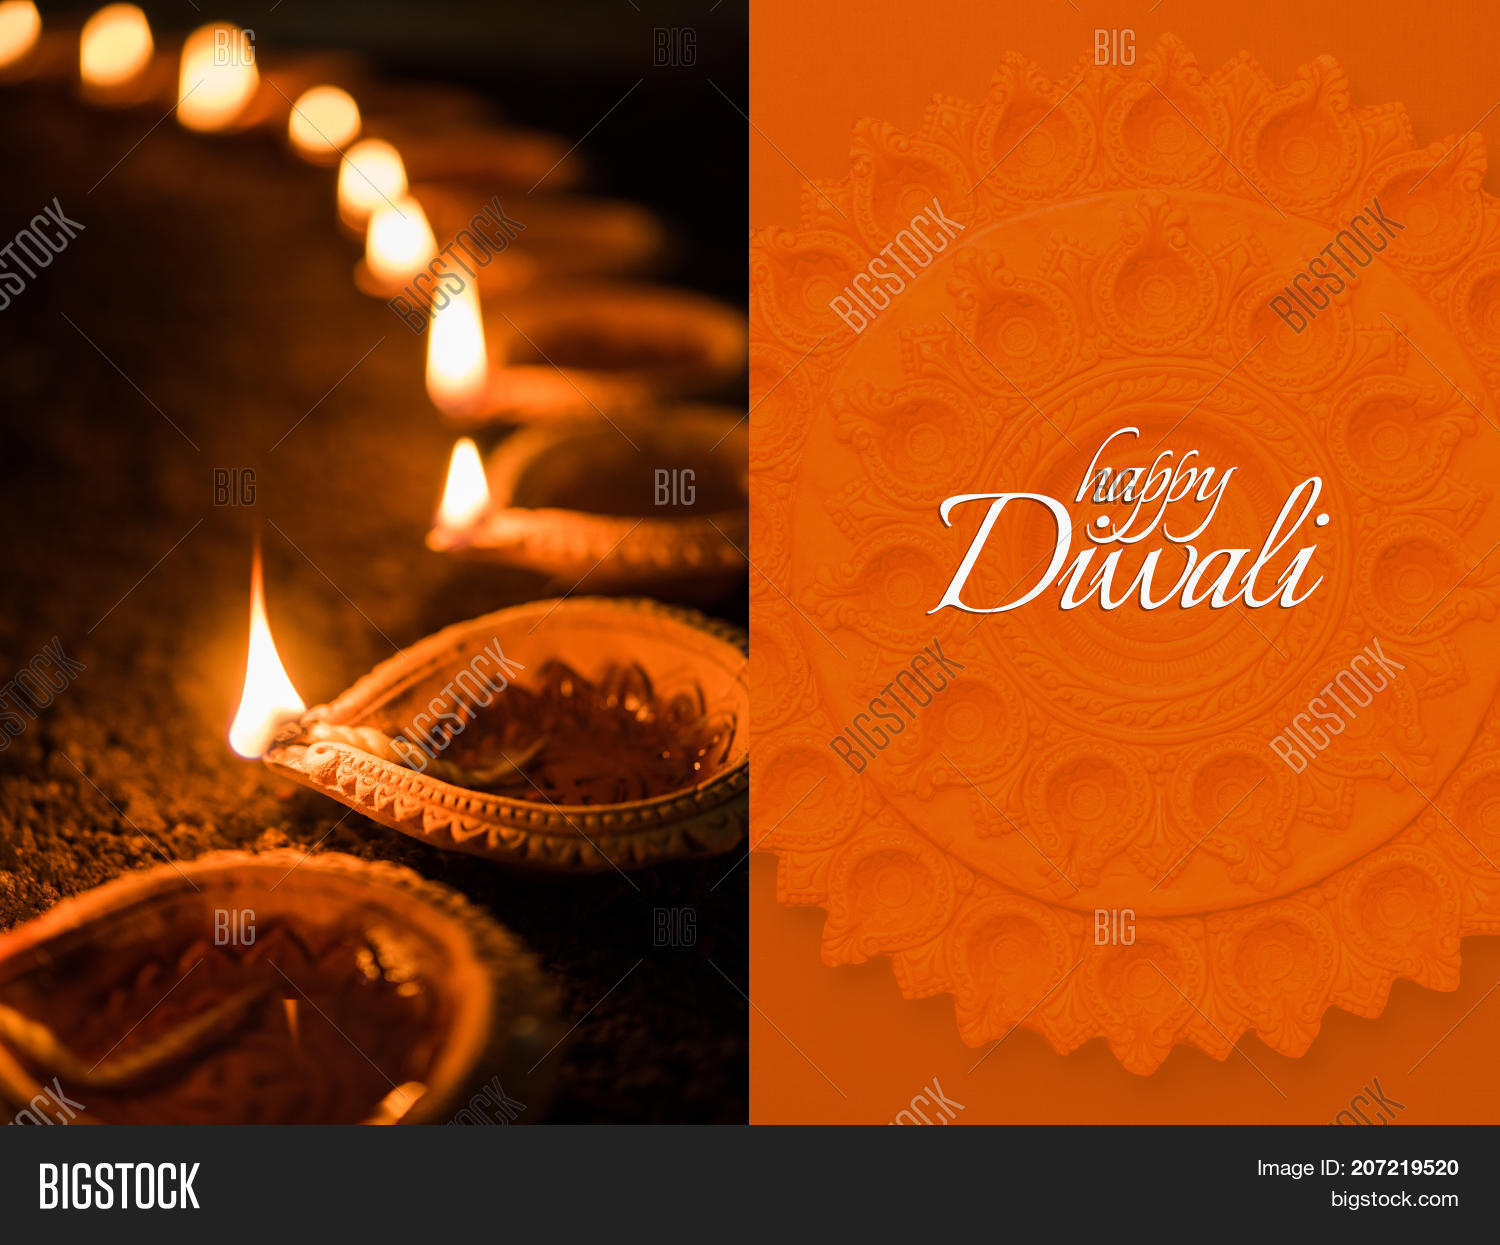 Happy Diwali Greeting Image Photo Free Trial Bigstock